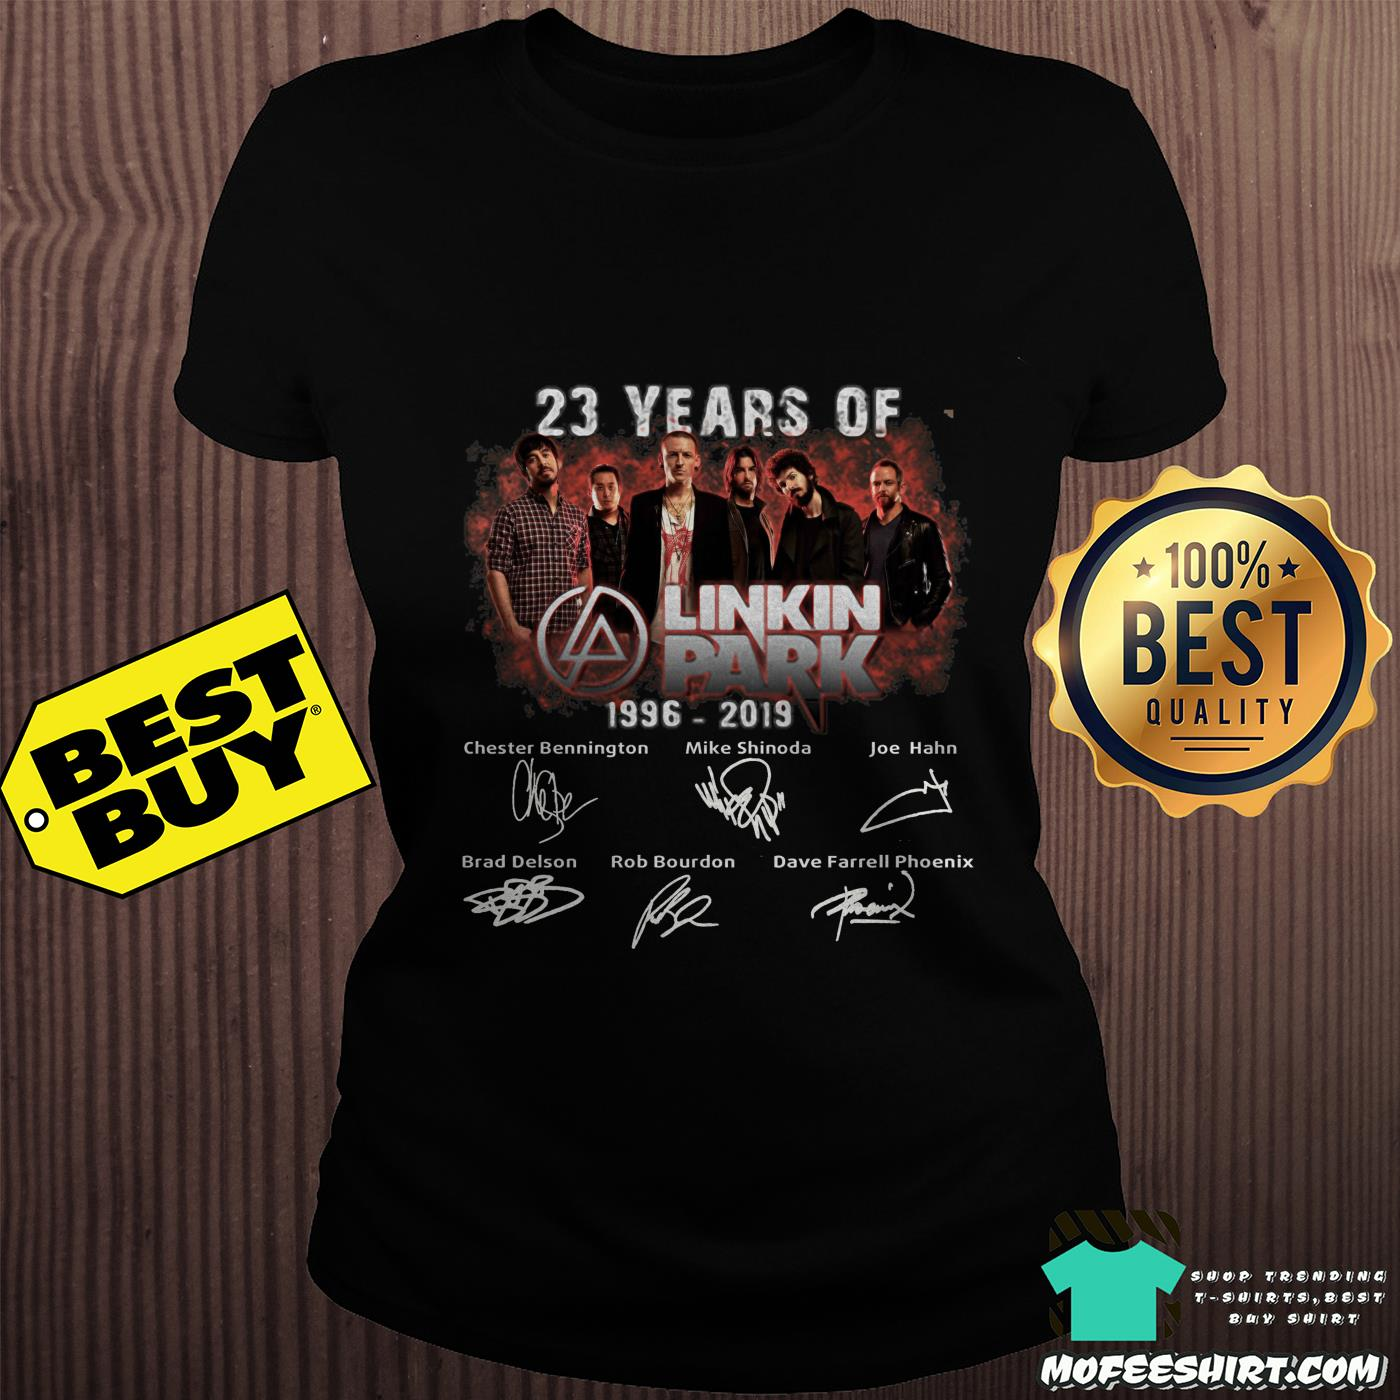 Sale 20 Official 23 Years Of Linkin Park 1996 2019